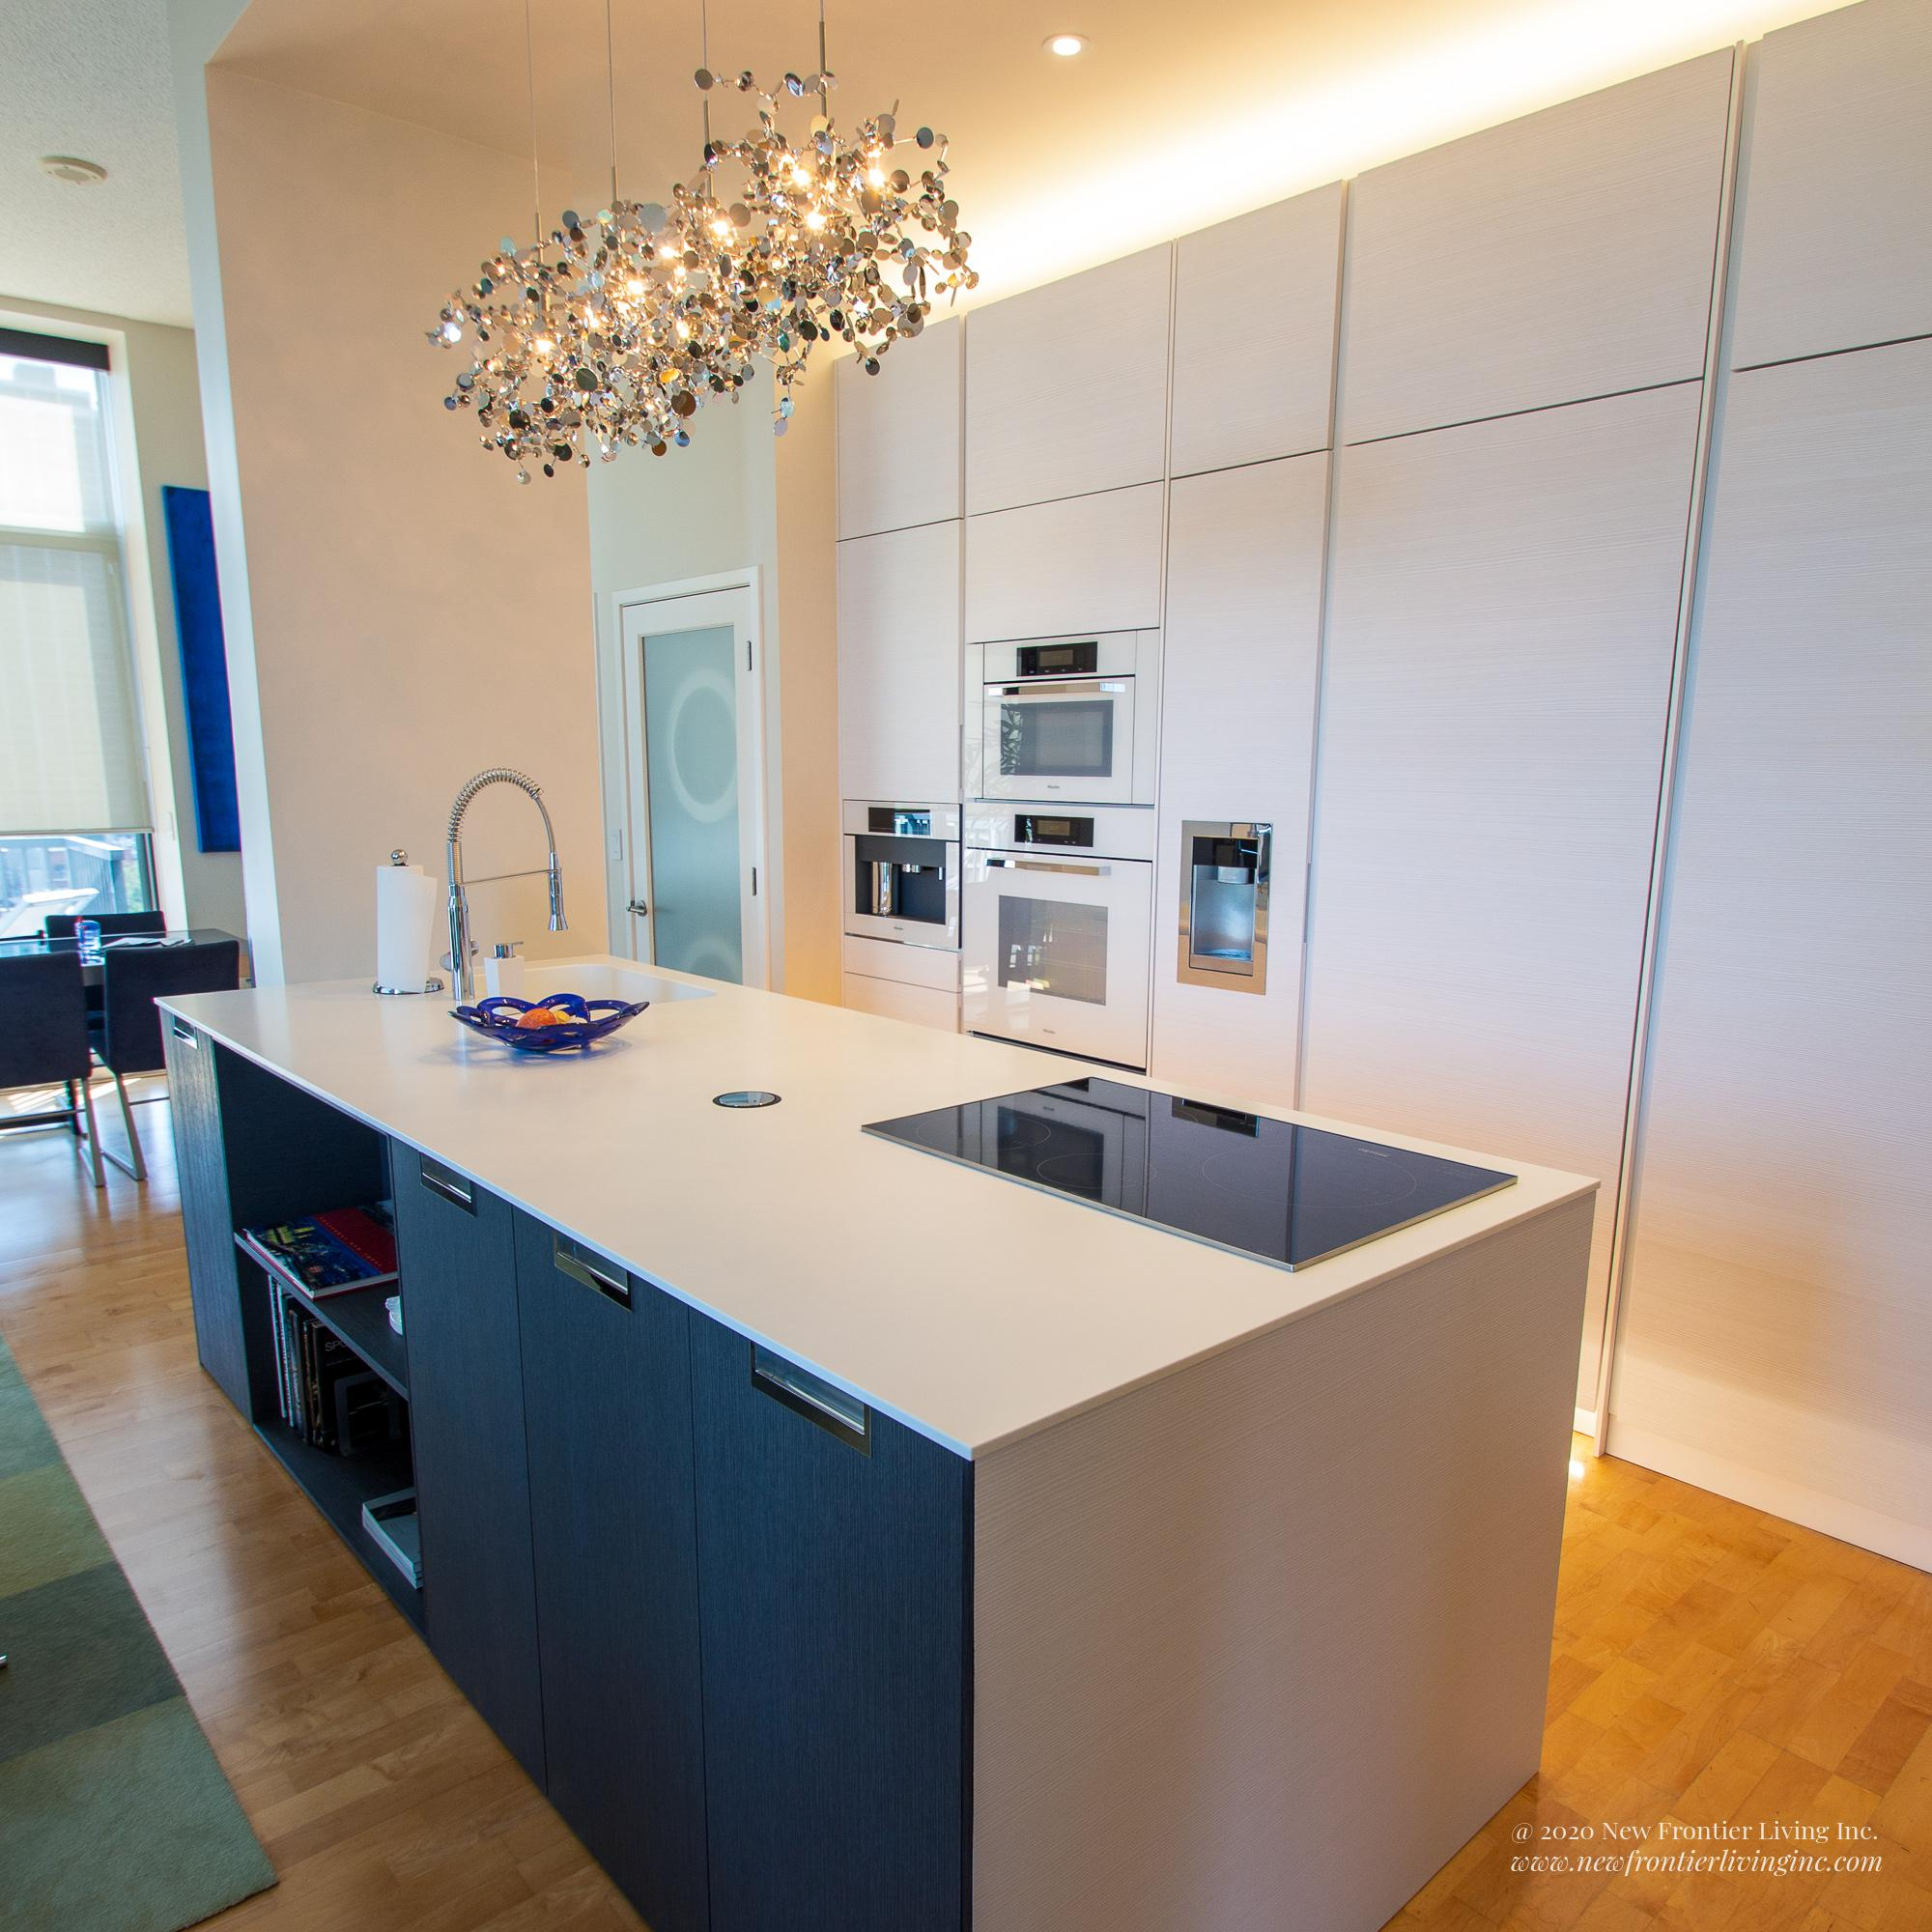 White waterfall kitchen island with black cabinetry and induction cooktop, large white cabinetry on the wall with appliances